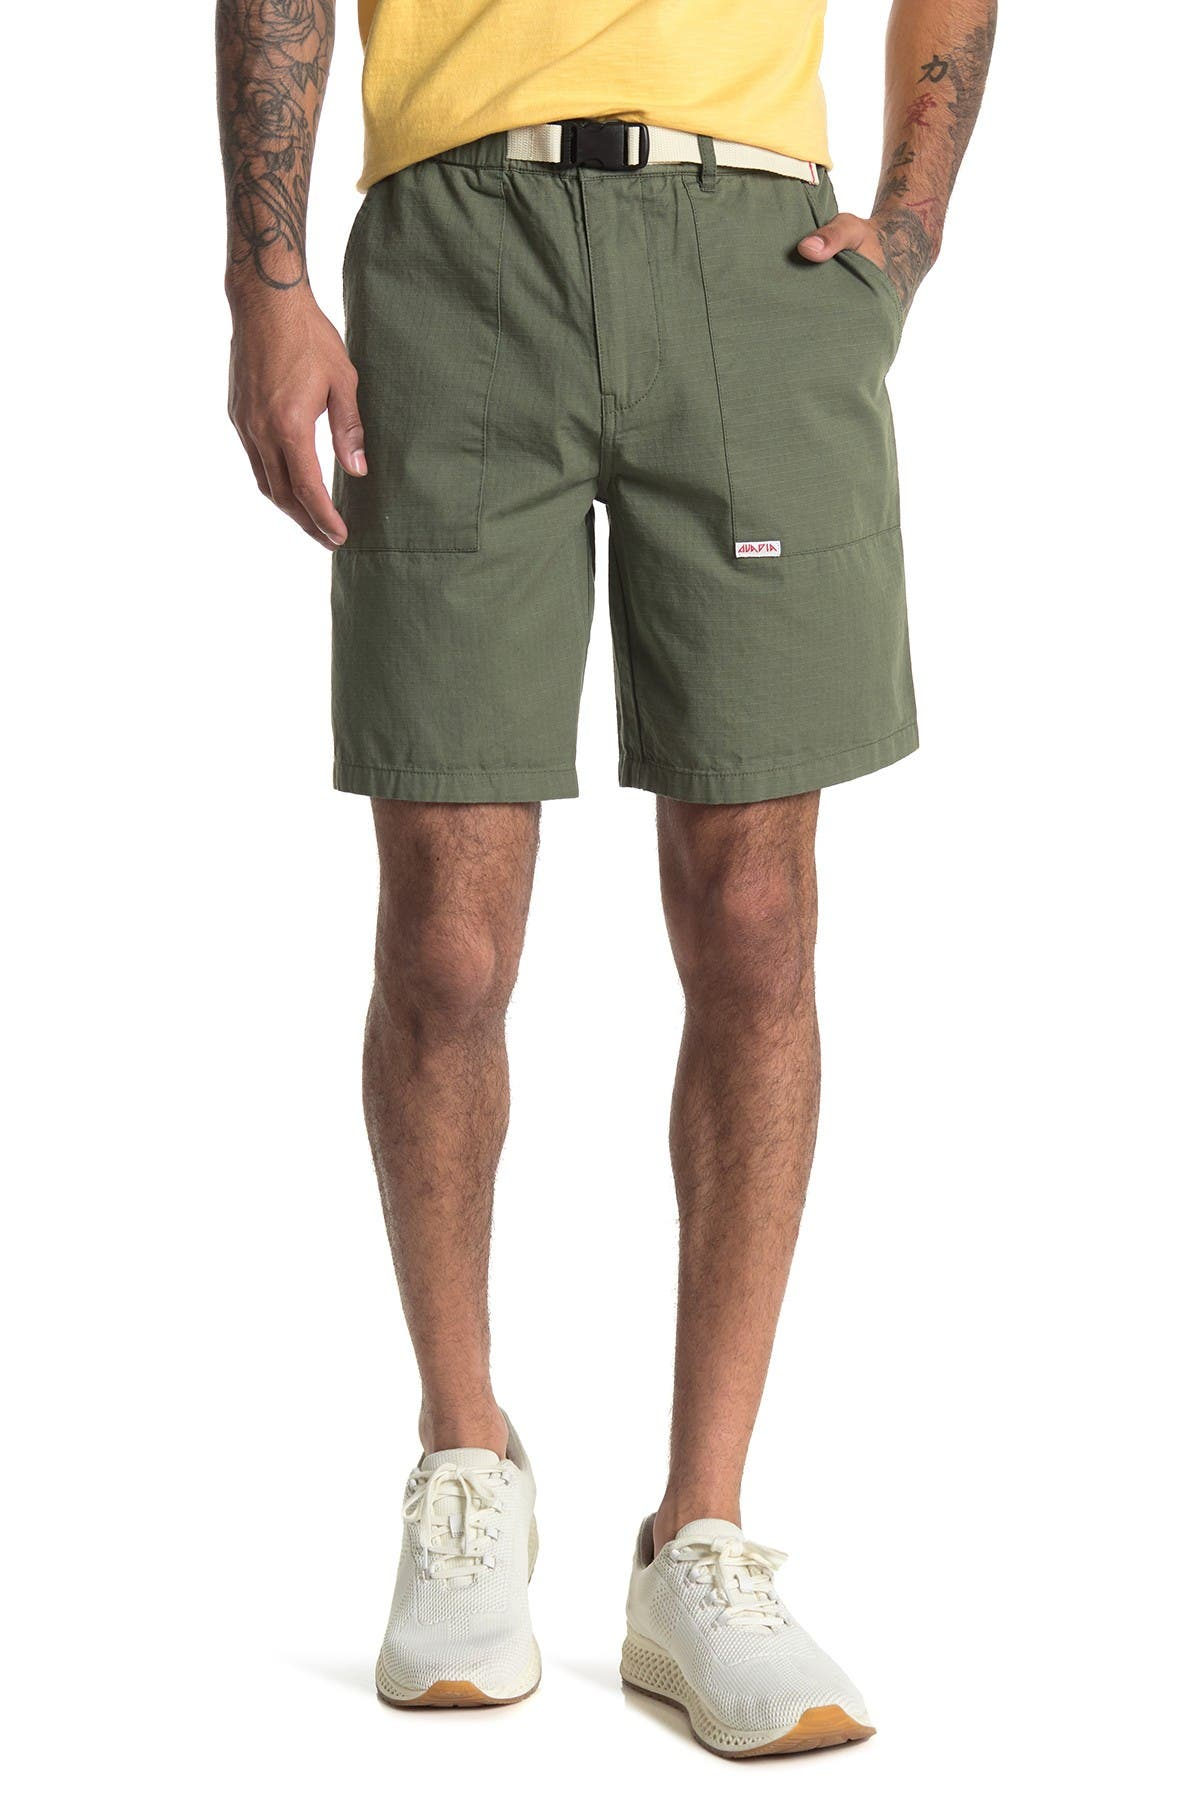 Image of OVADIA AND SONS Ripstop Belted Hiker Shorts